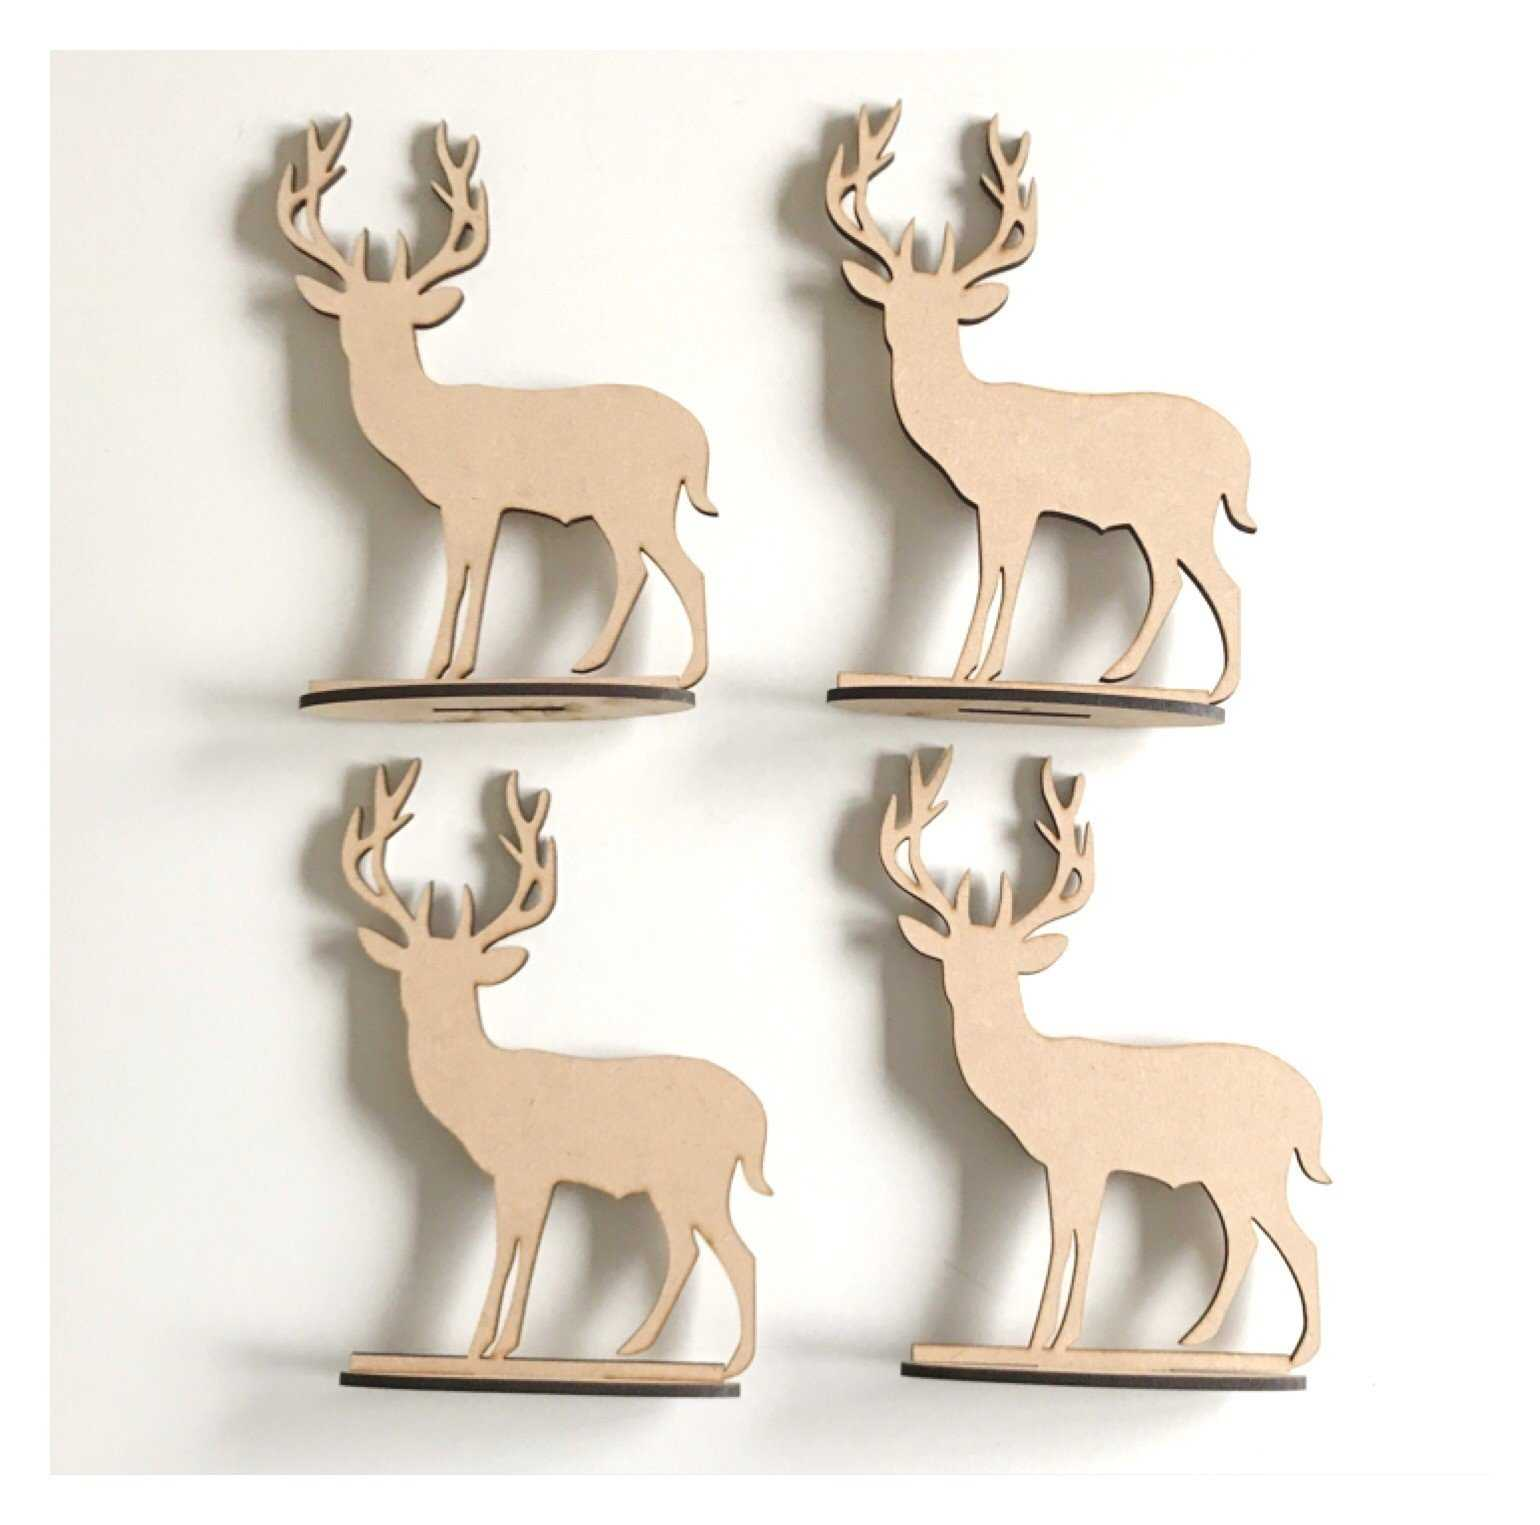 Deer Stag Reindeer x4 Standing Raw MDF Wooden DIY Craft - The Renmy Store